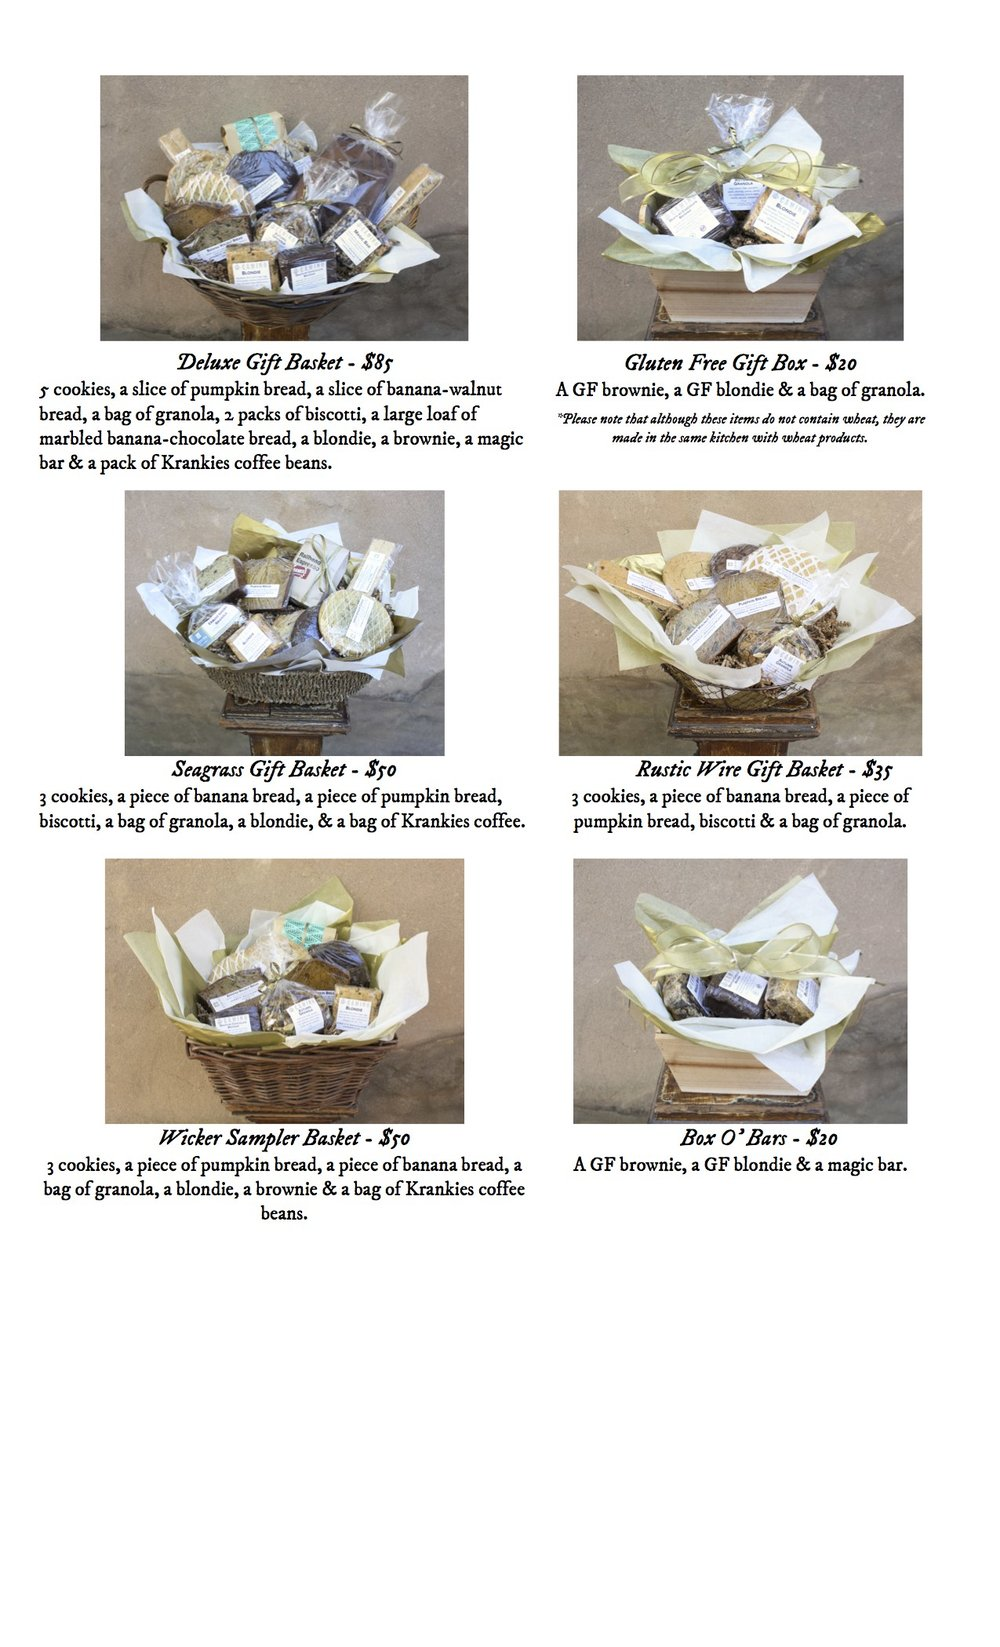 Microsoft Word - Gift Baskets 2016 (legal size).jpg